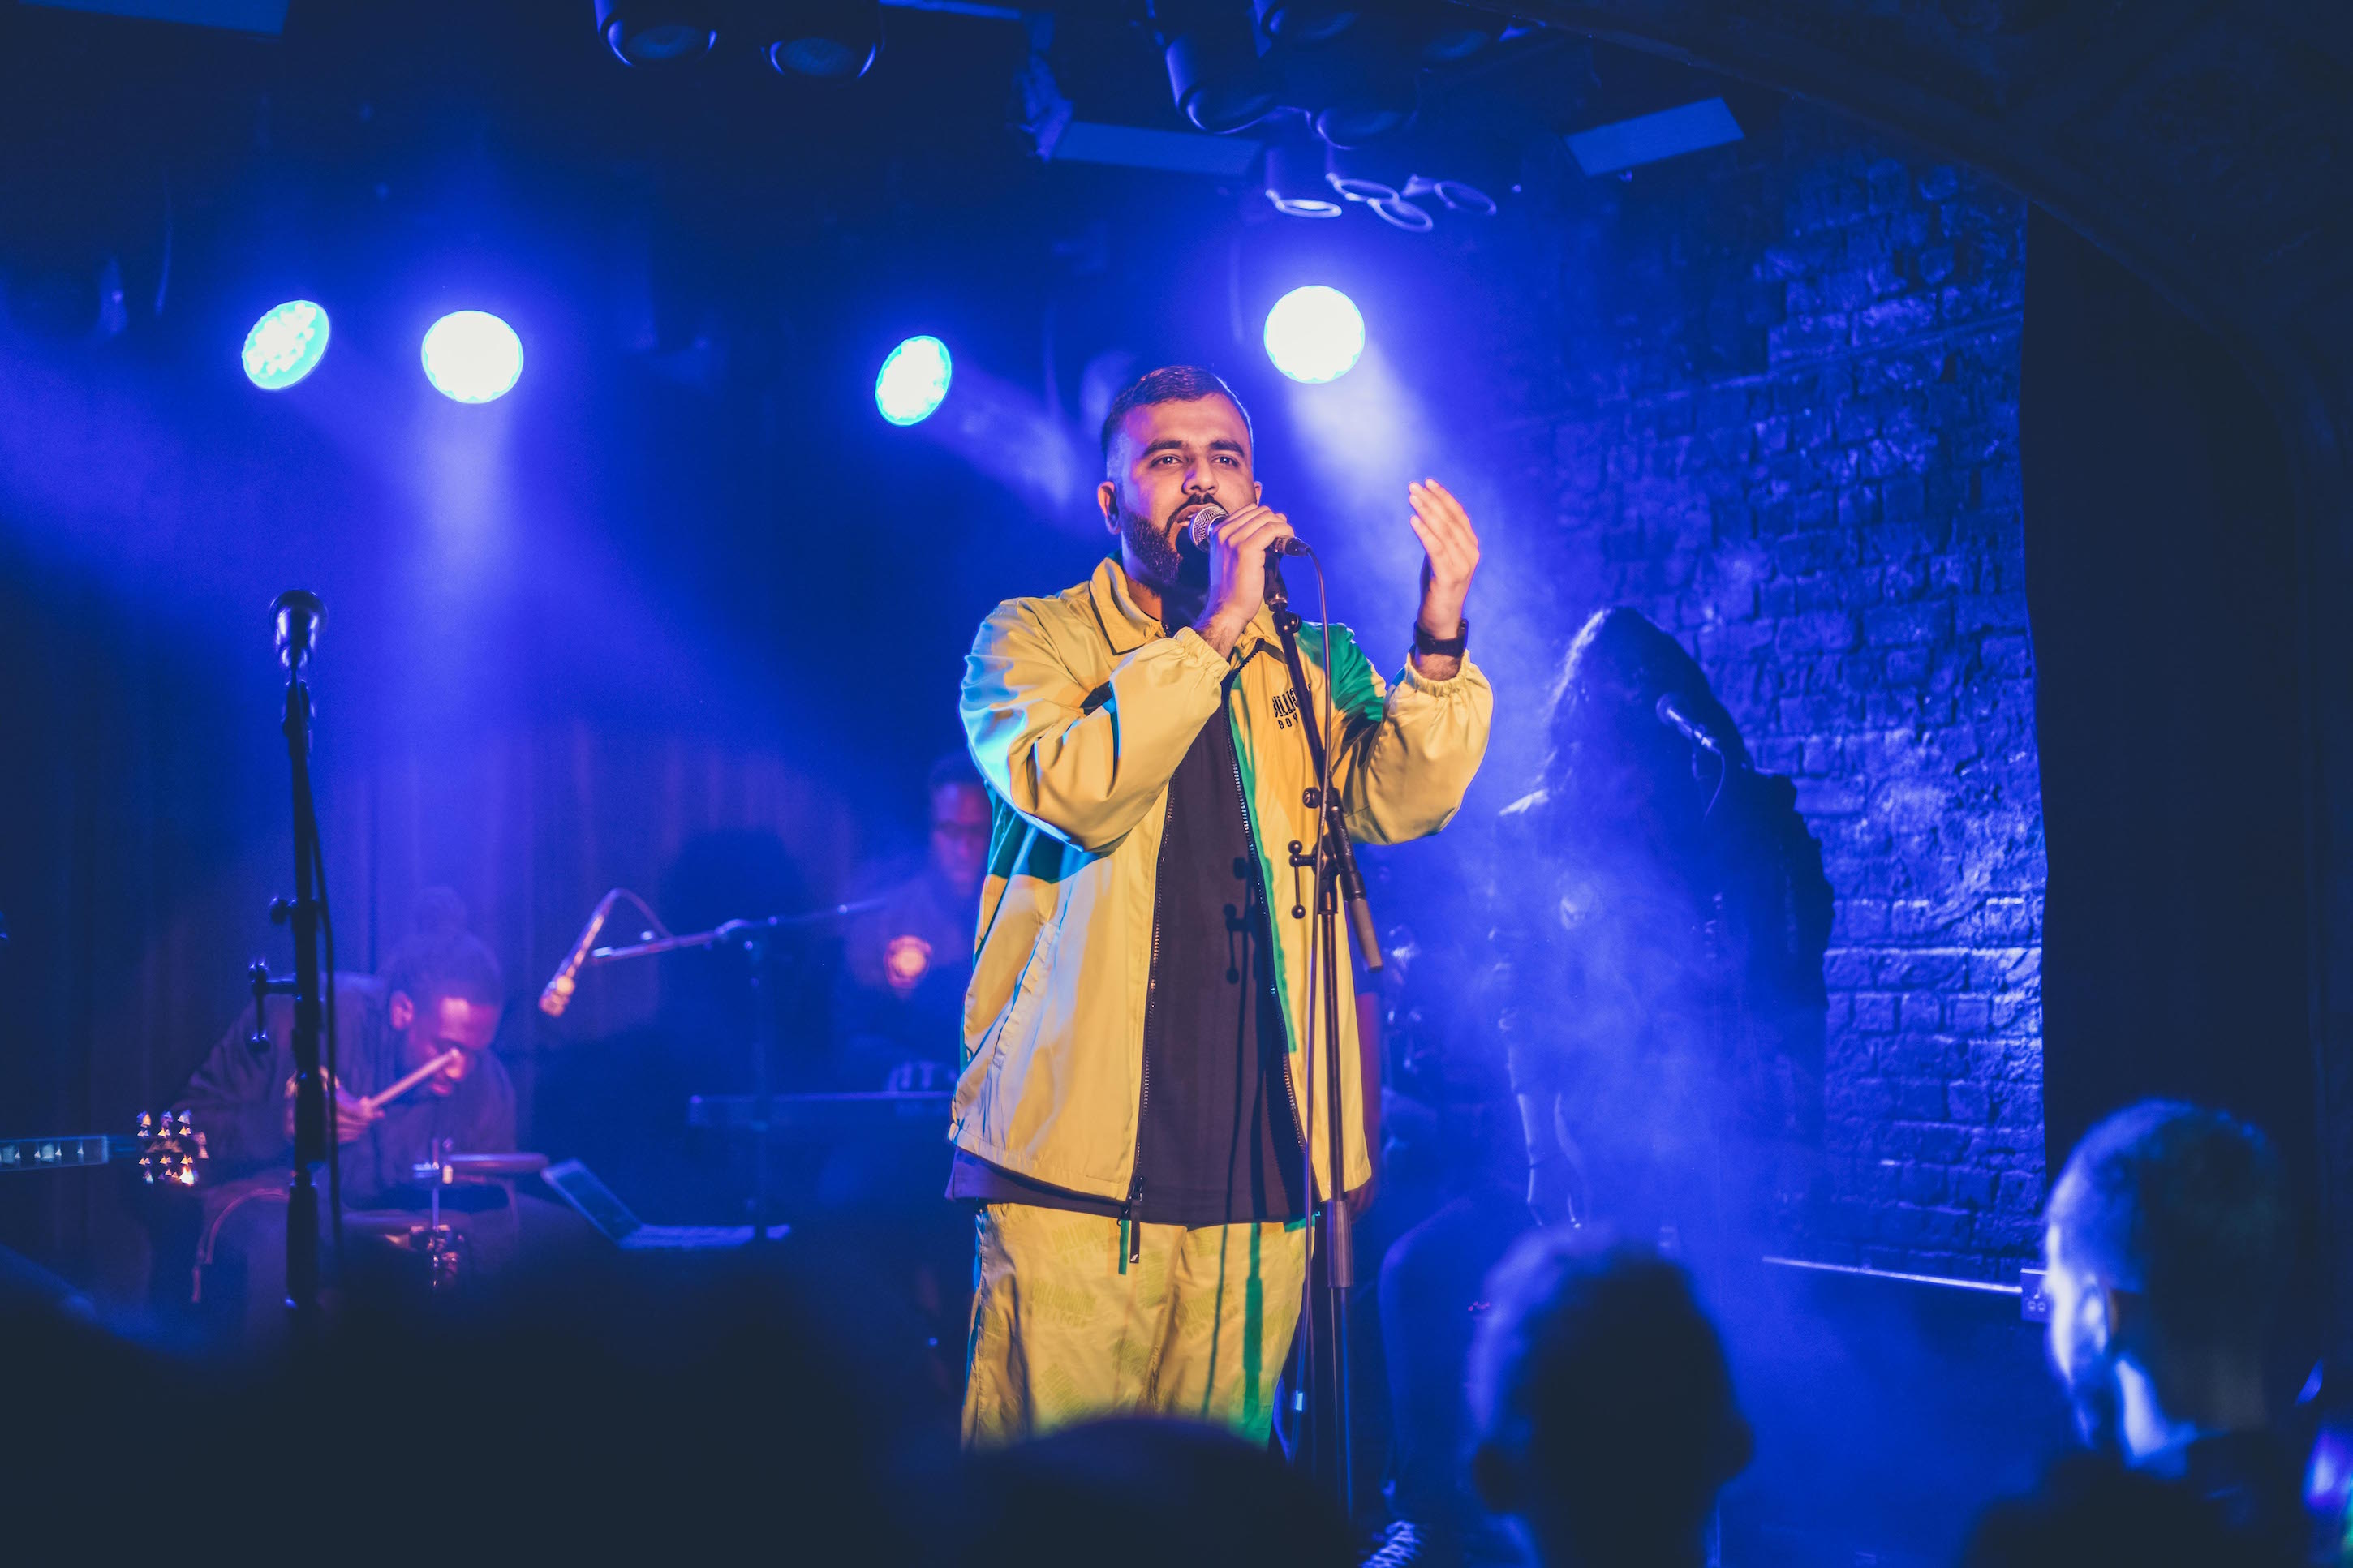 'If I don't write for a few days I get proper caught up in my feelings' – poet Hussain Manawer talks mental health on our weekly podcast